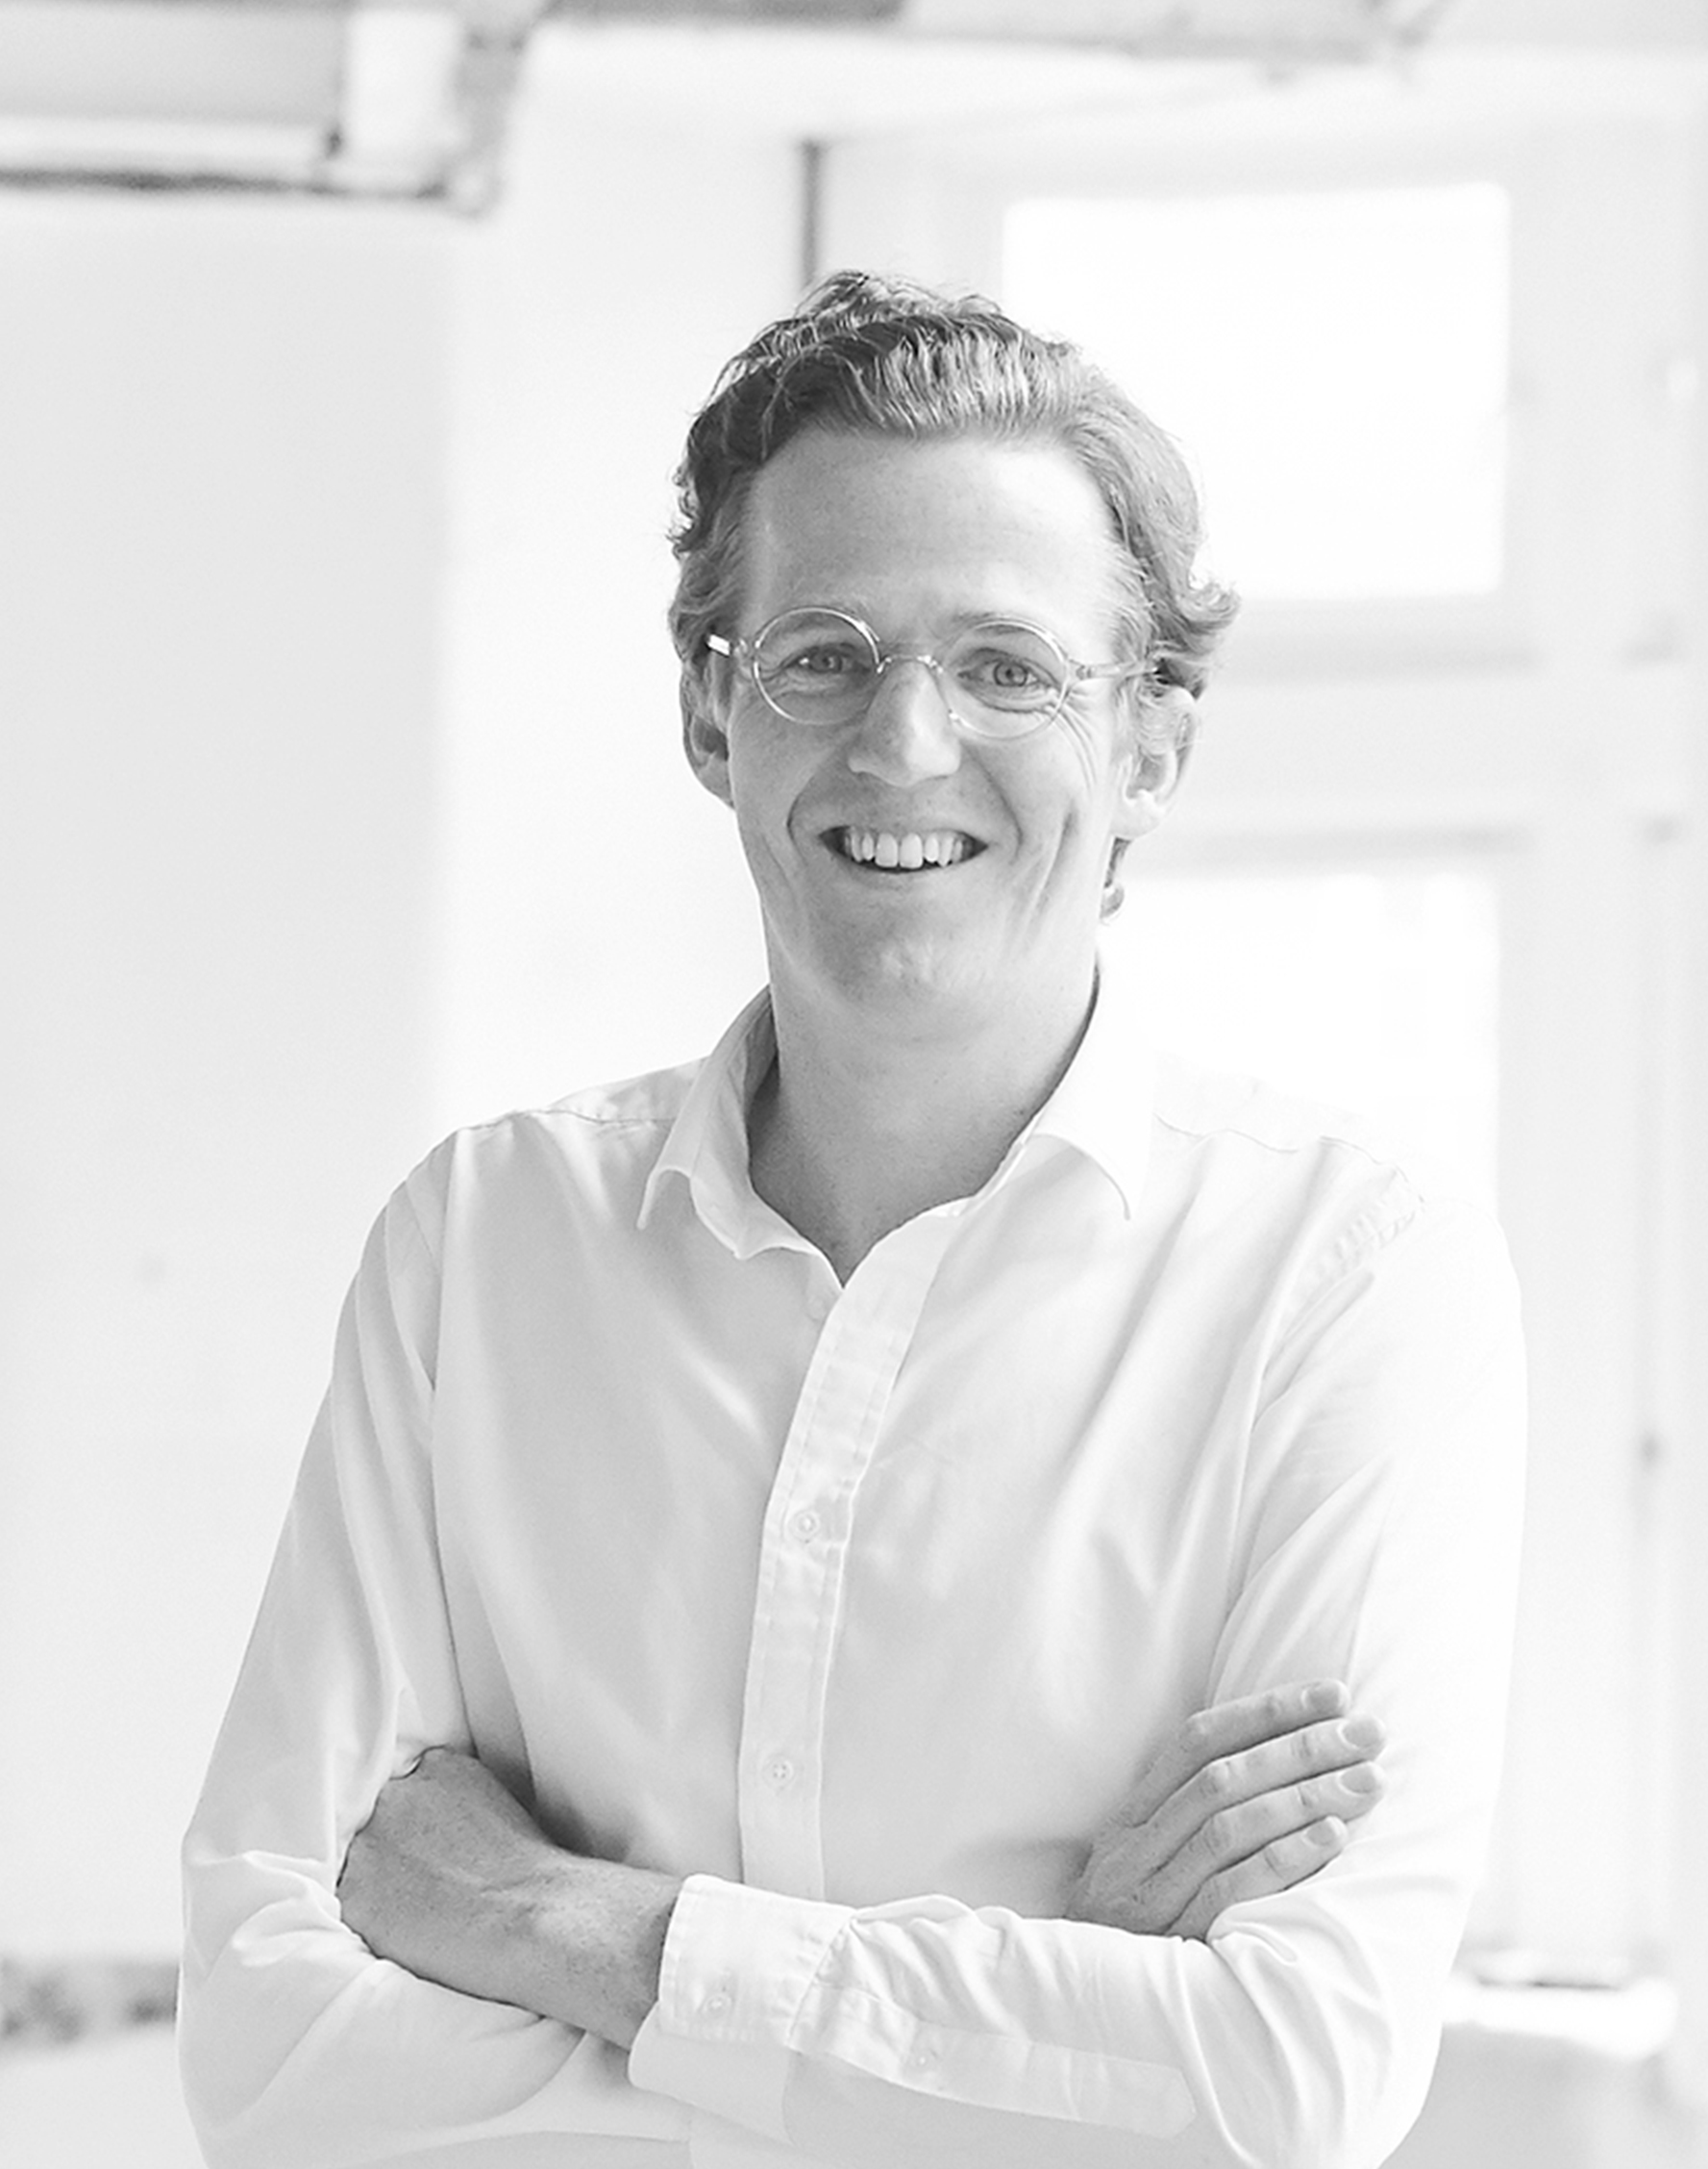 Samuel Lawson Johnston - Samuel is focused on investment strategy, management and creative direction at Kinrise. He is also a trustee of charity:water and Hackney.Church, and co-founded eyewear brand Finlay London. Samuel has worked in UK commercial real estate for 14 years, with former roles as equity partner at Cording Real Estate Group, and Investment Director of FORE Partnership.